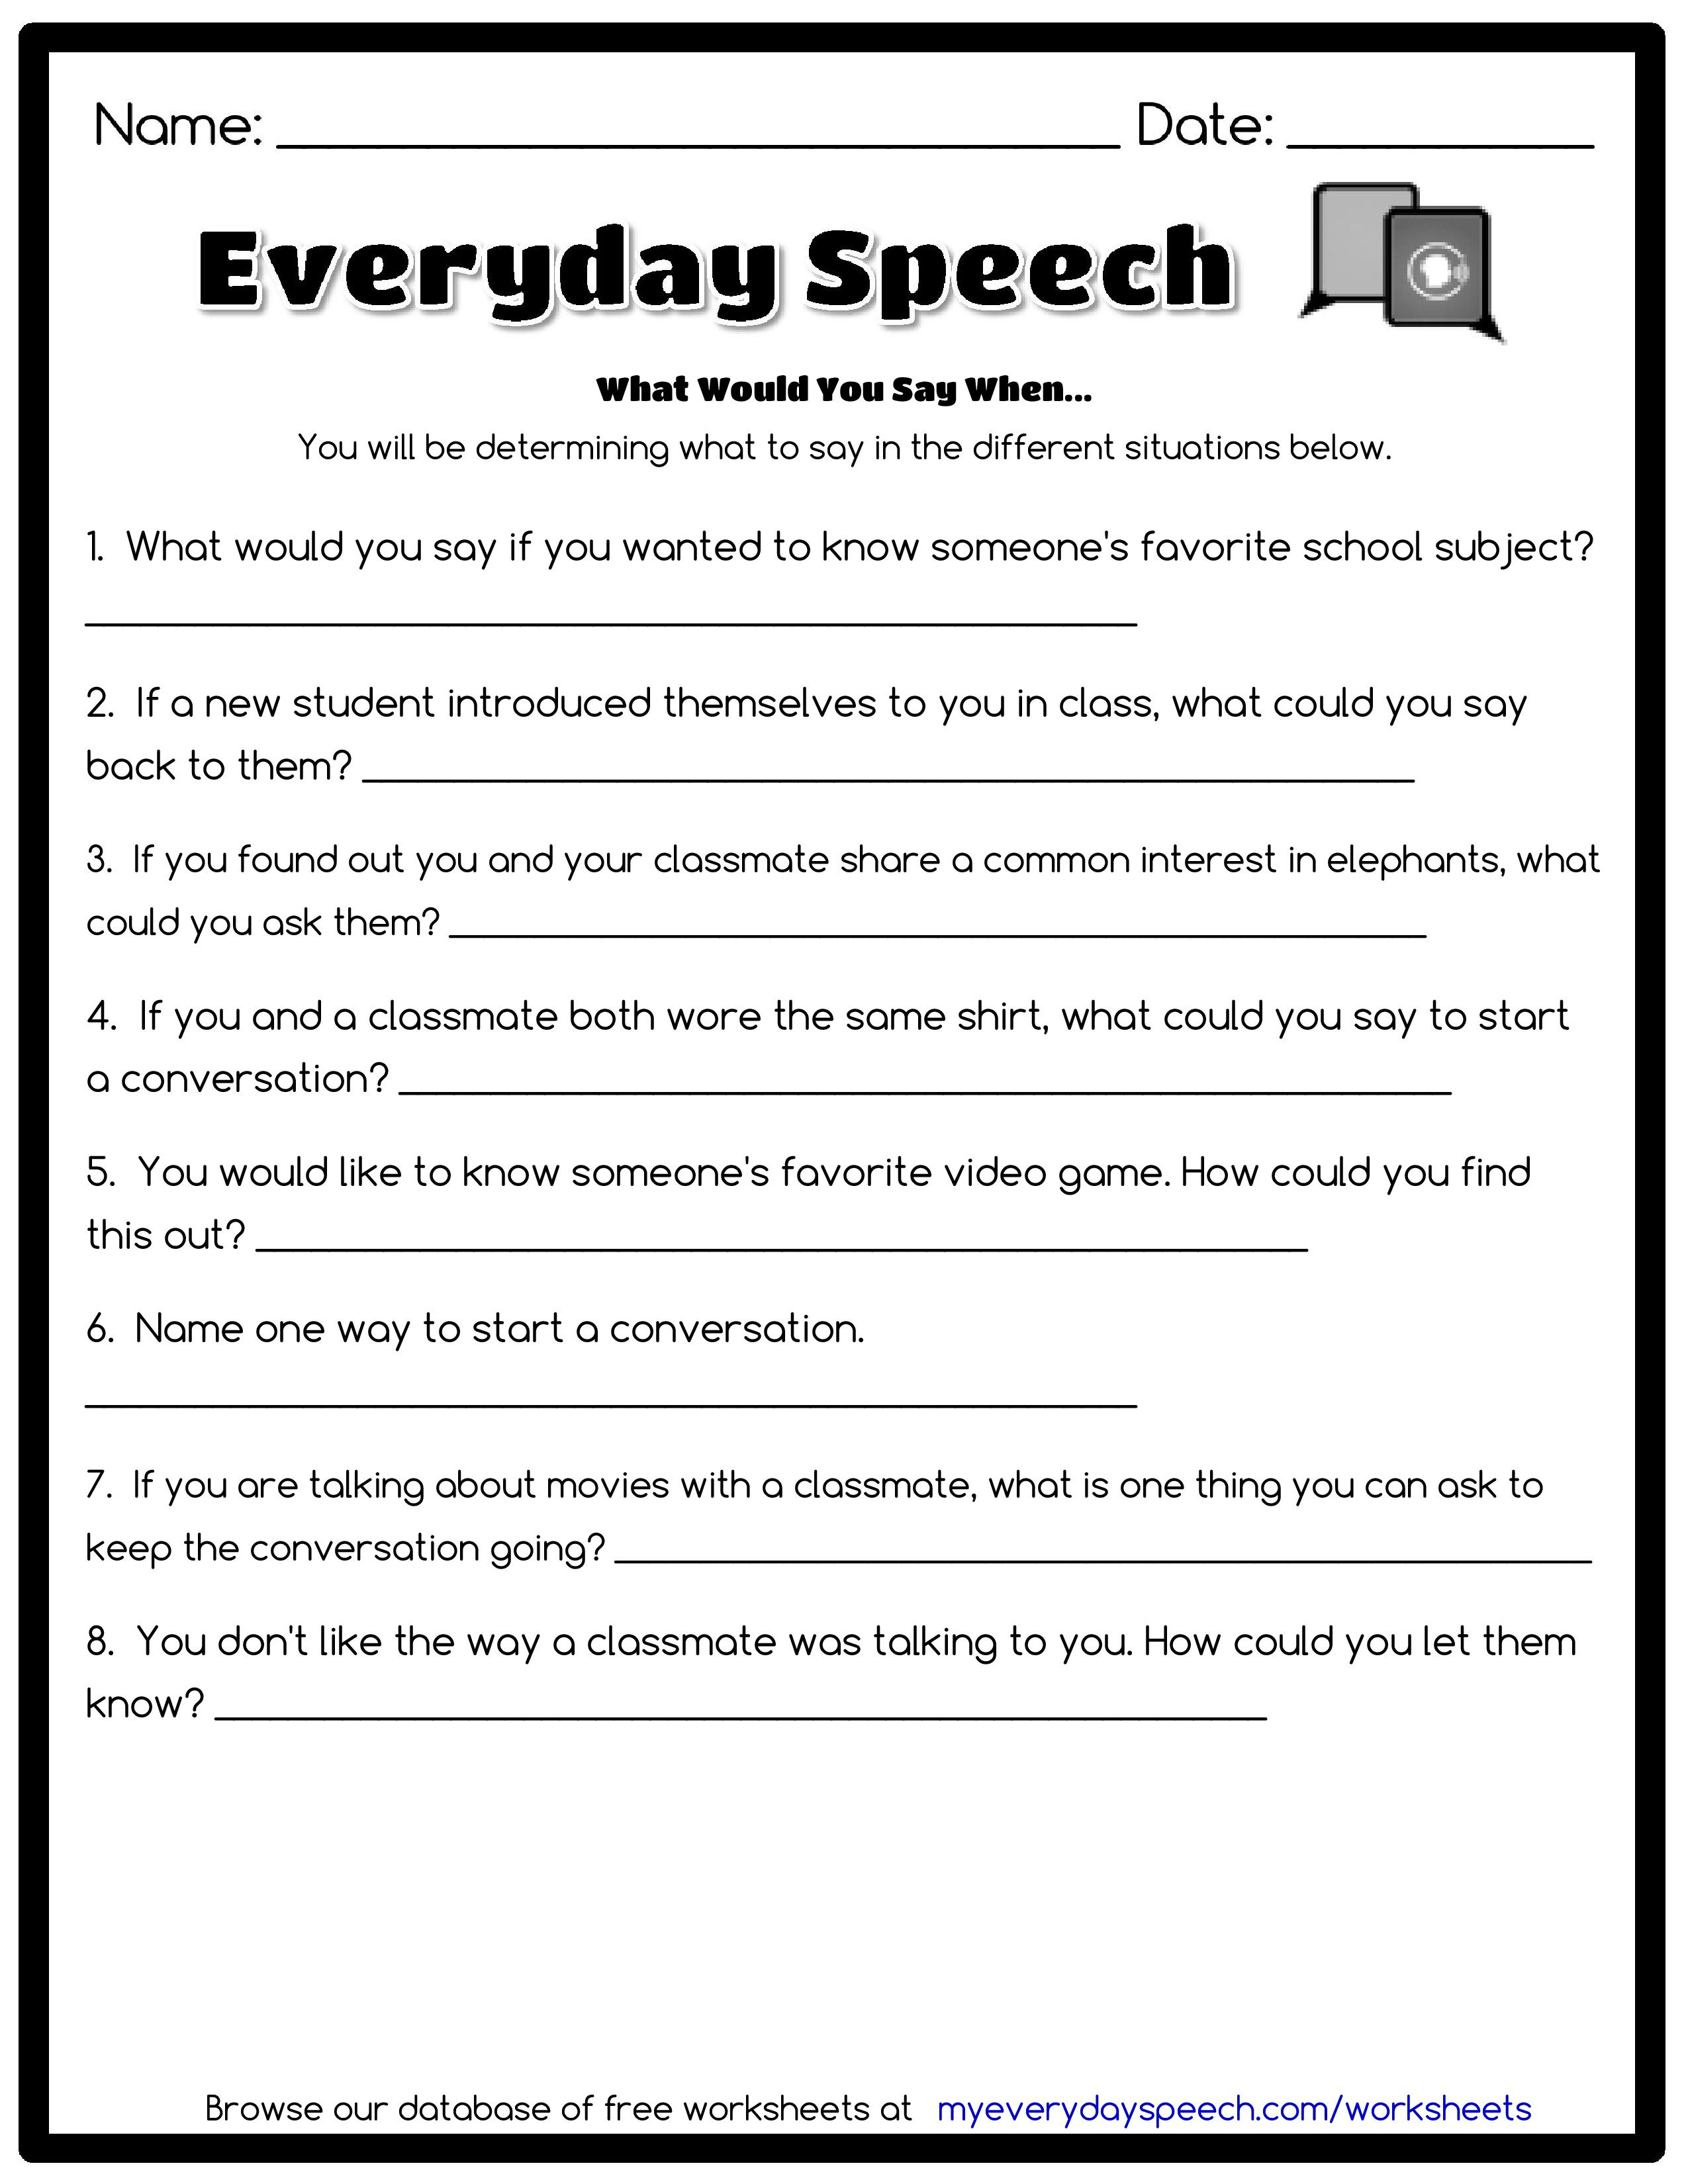 Worksheets Free Worksheet Creator check out the worksheet i just made using everyday speechs creator what would you